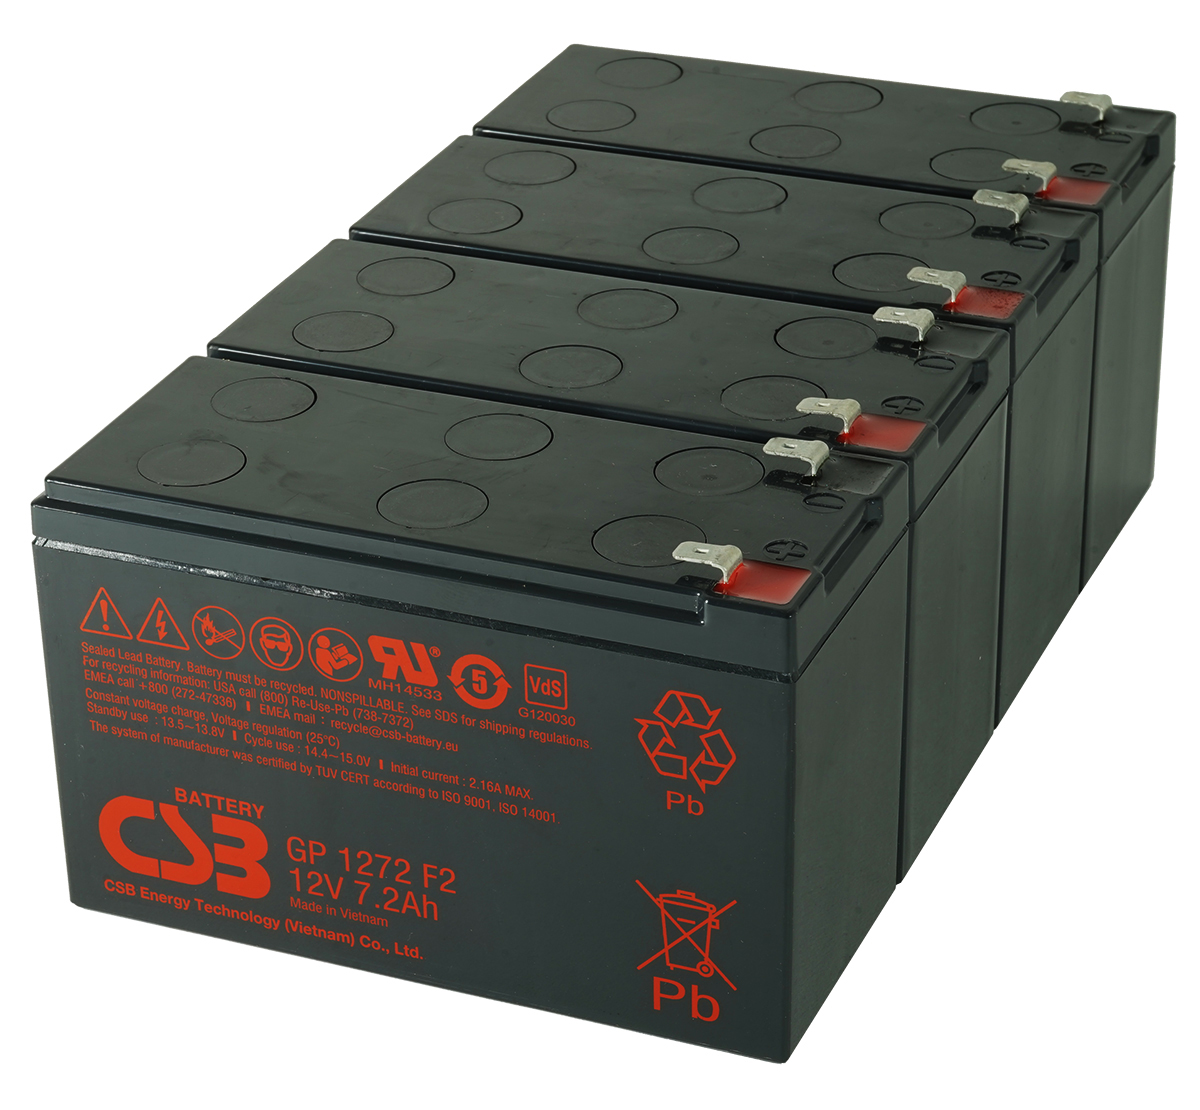 MDS2306 UPS Battery Kit for MGE AB2306